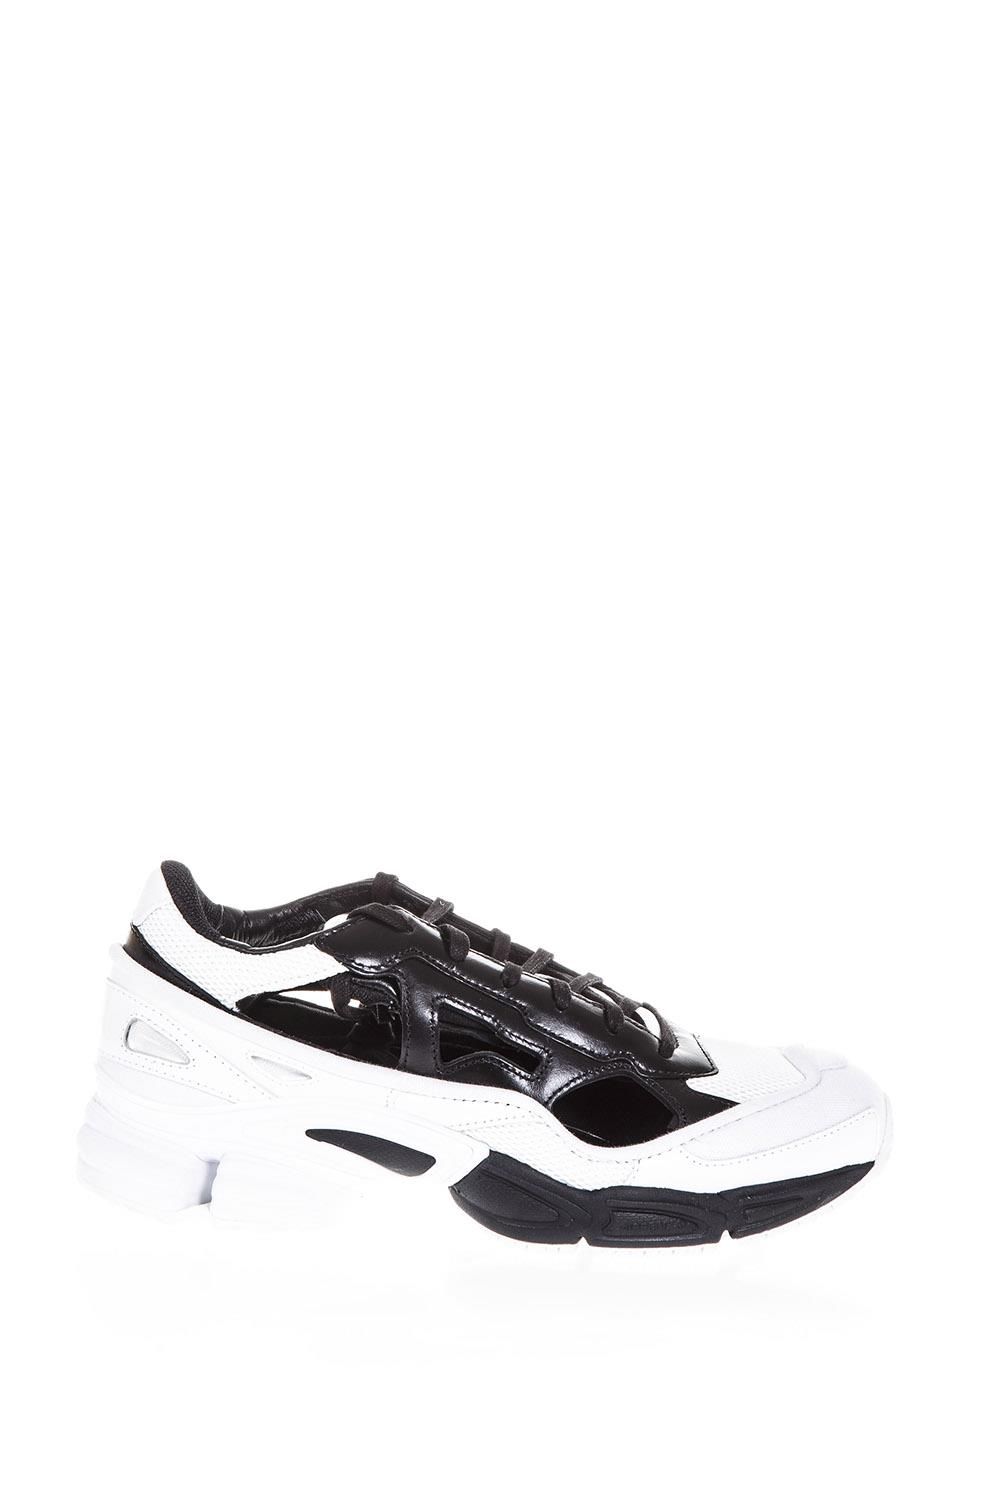 new styles 27081 fbd47 REPLICANT OZWEEGO BLACK  WHITE SNEAKERS BY RAF SIMONS. ADIDAS BY RAF SIMONS